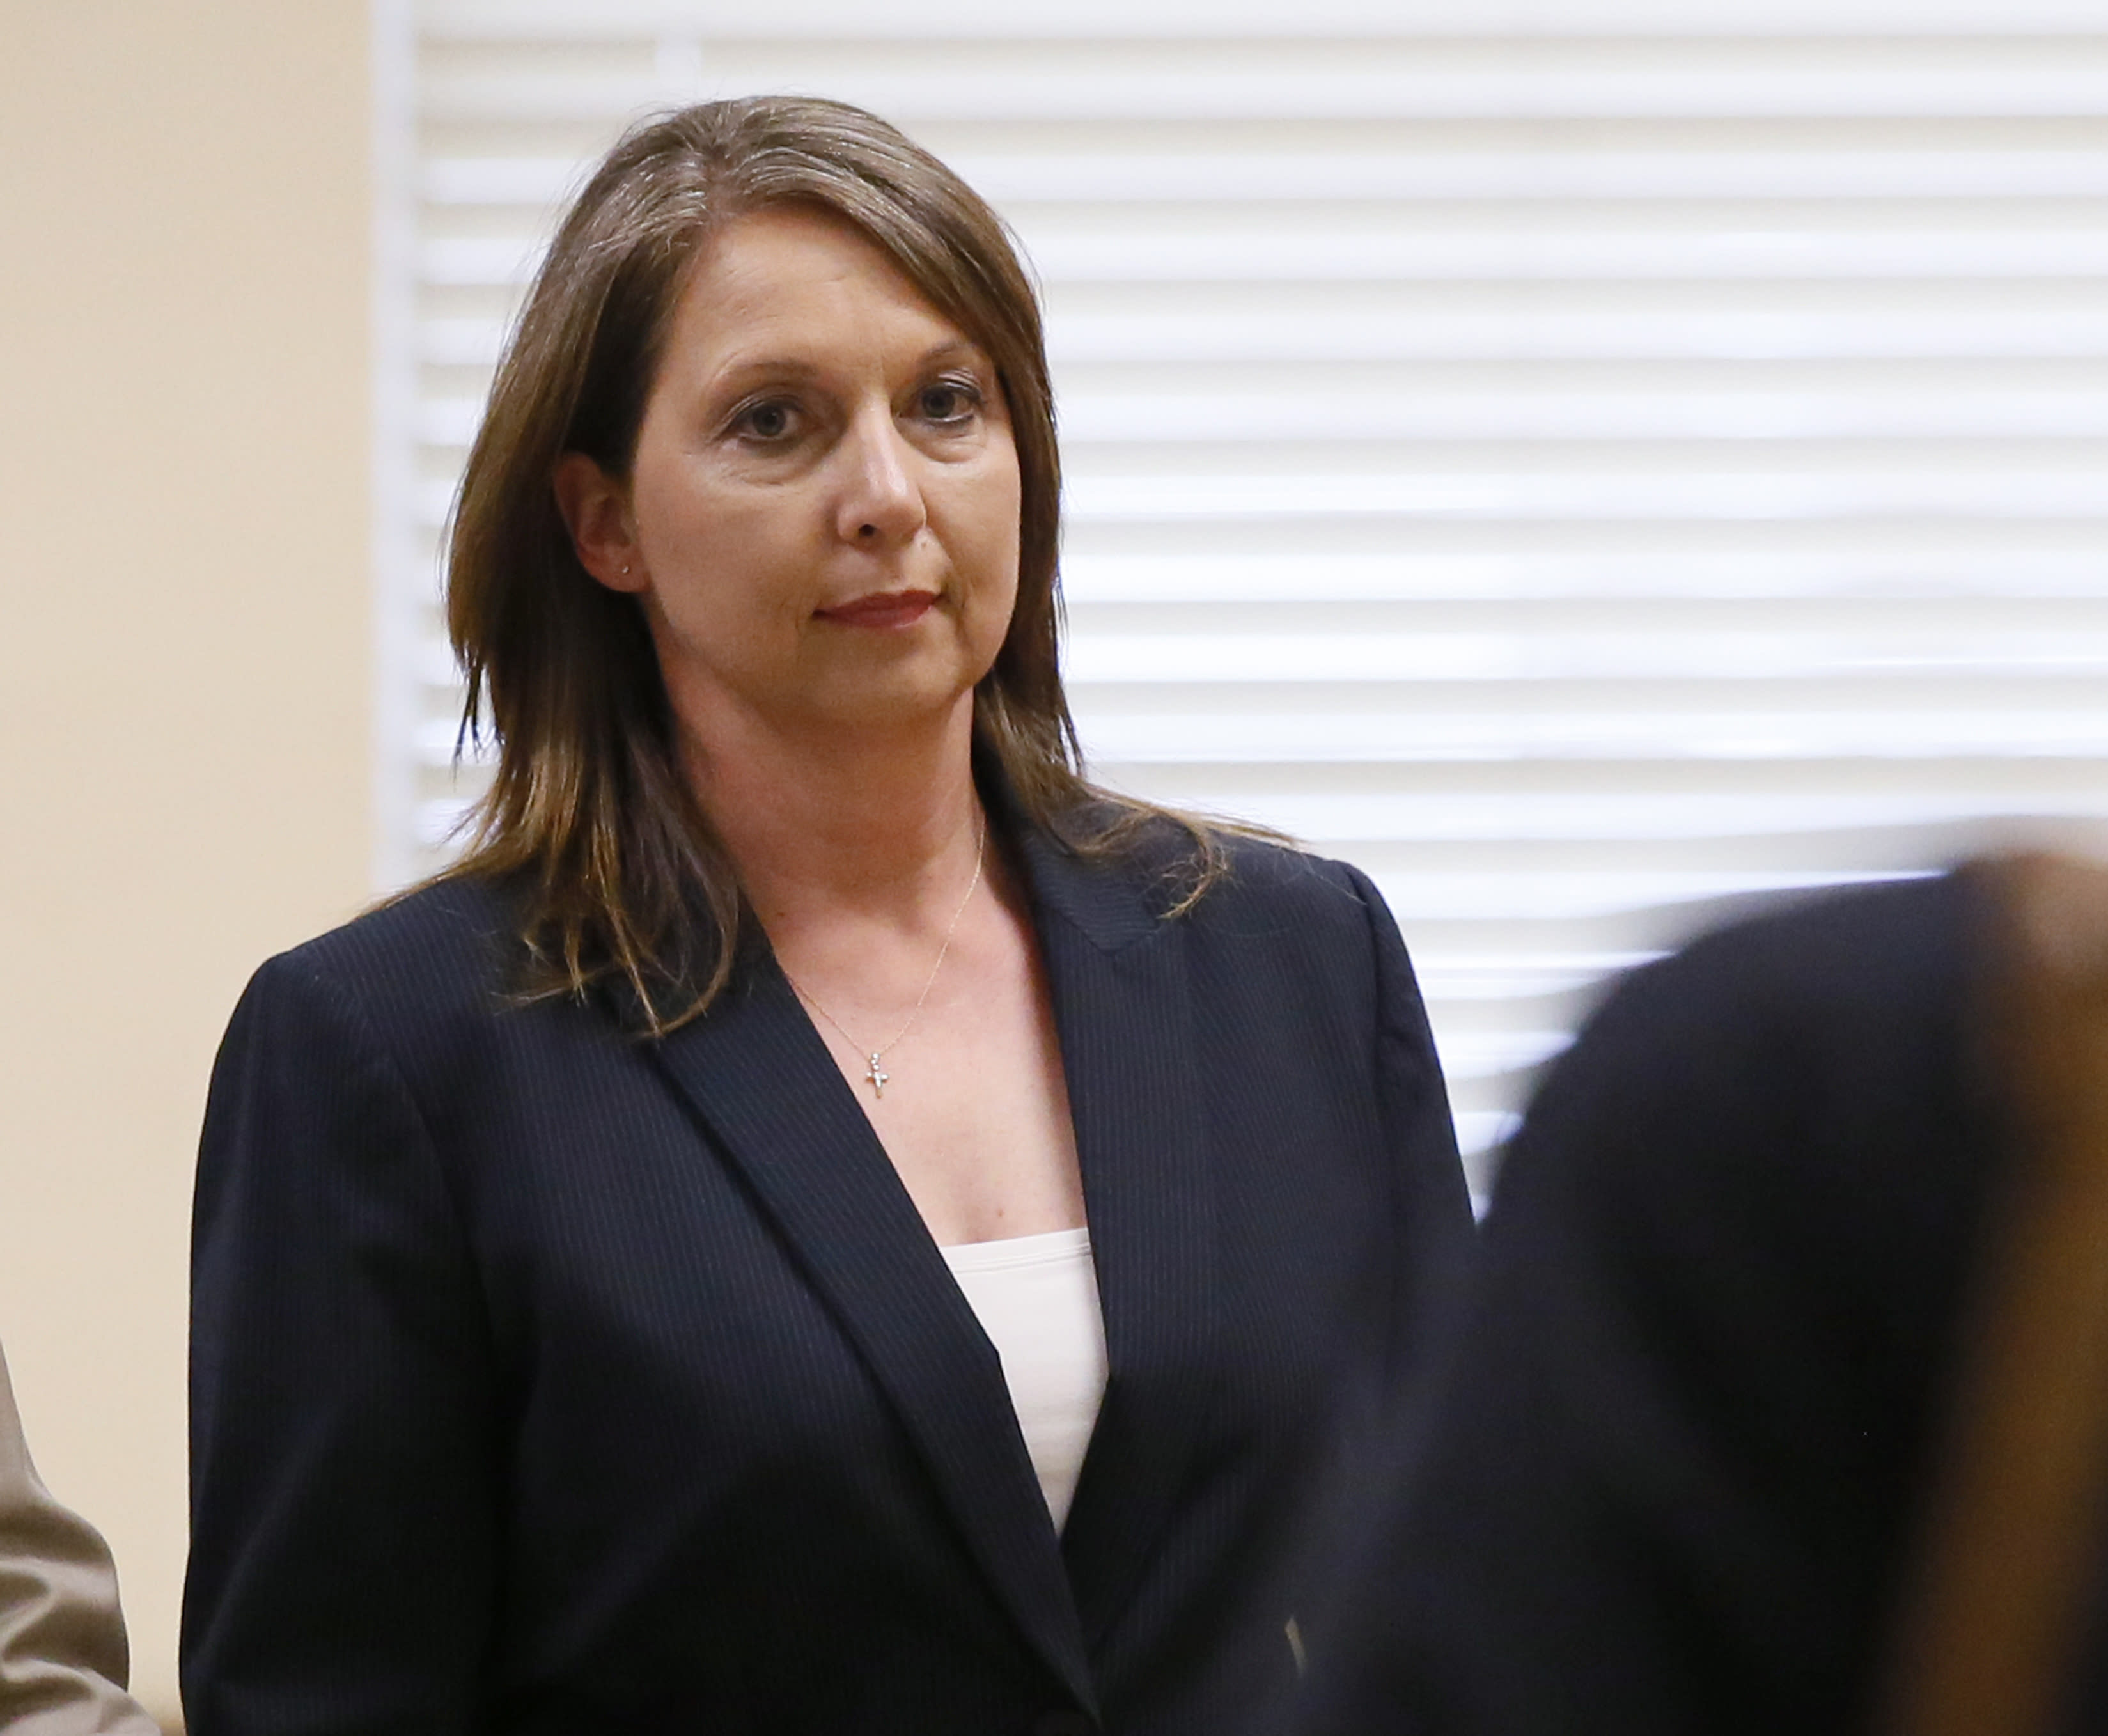 Tulsa Cop Acquitted in Fatal Shooting of Unarmed Black Man Resigns